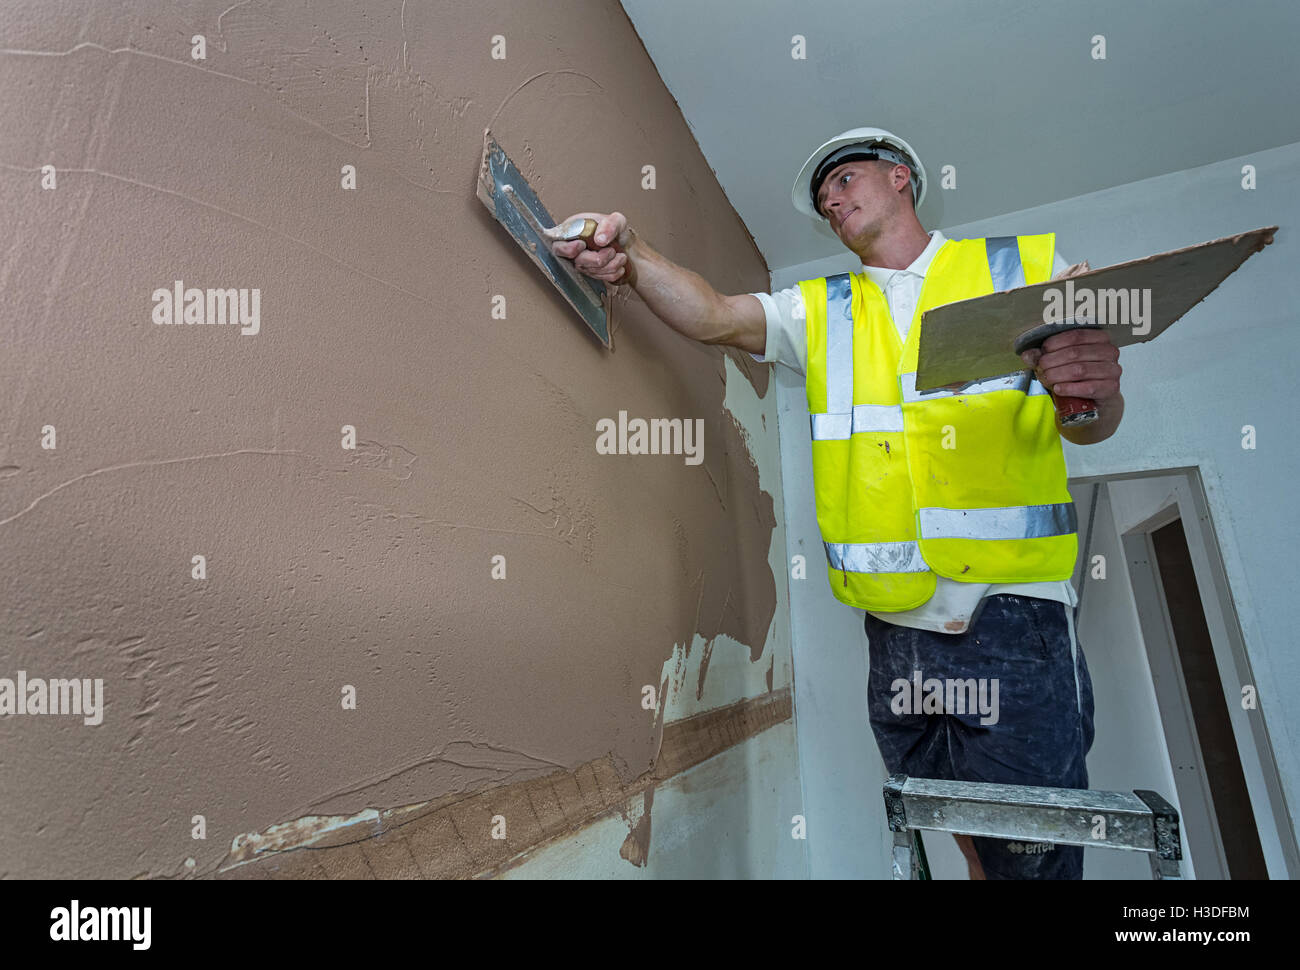 Plasterer working on a building site - Stock Image